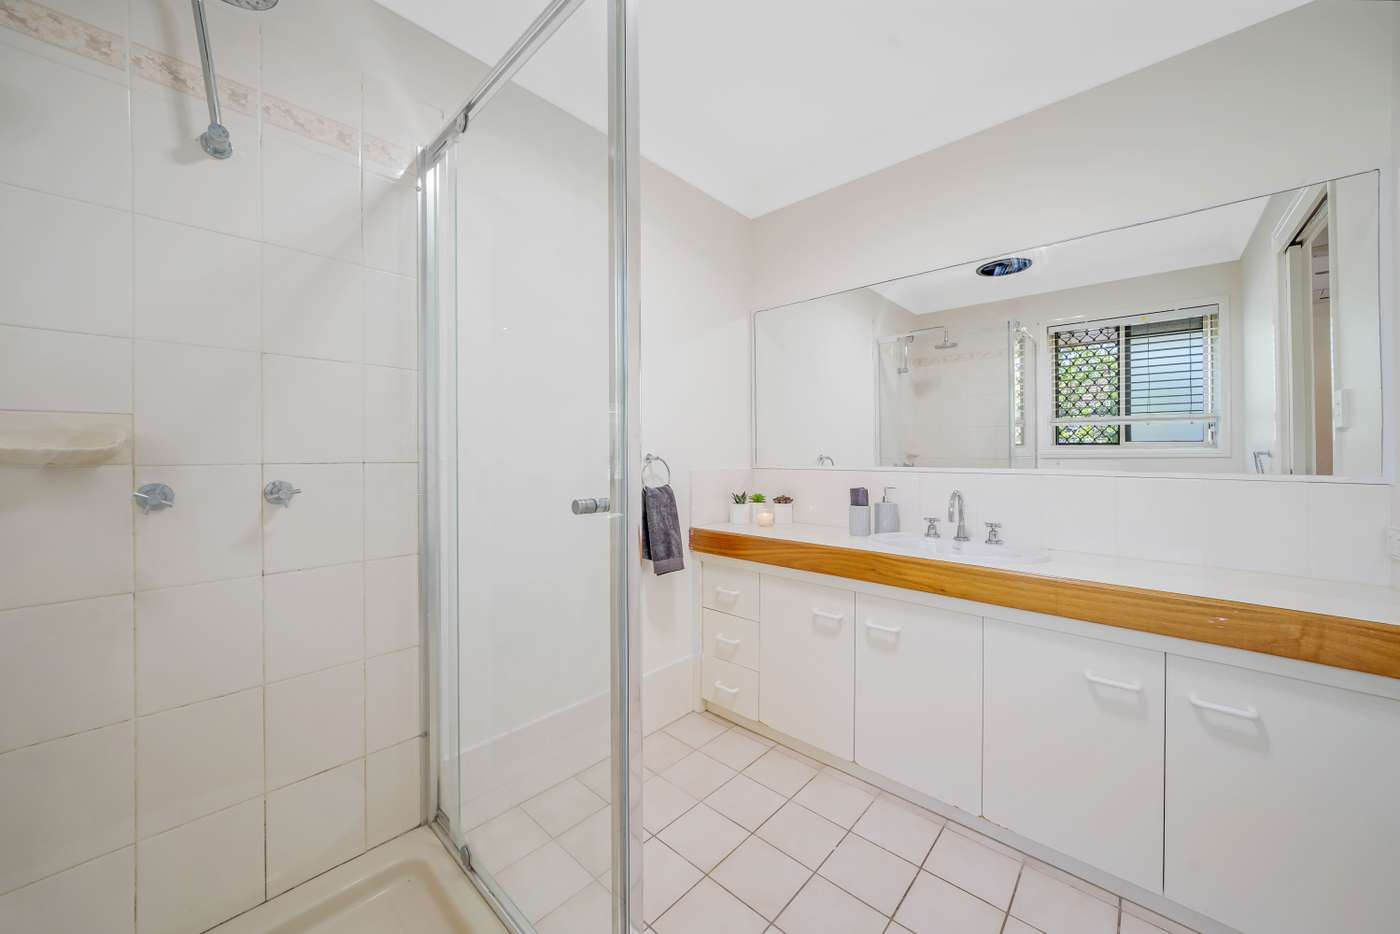 Seventh view of Homely house listing, 60 Jilbard Drive, Springwood QLD 4127